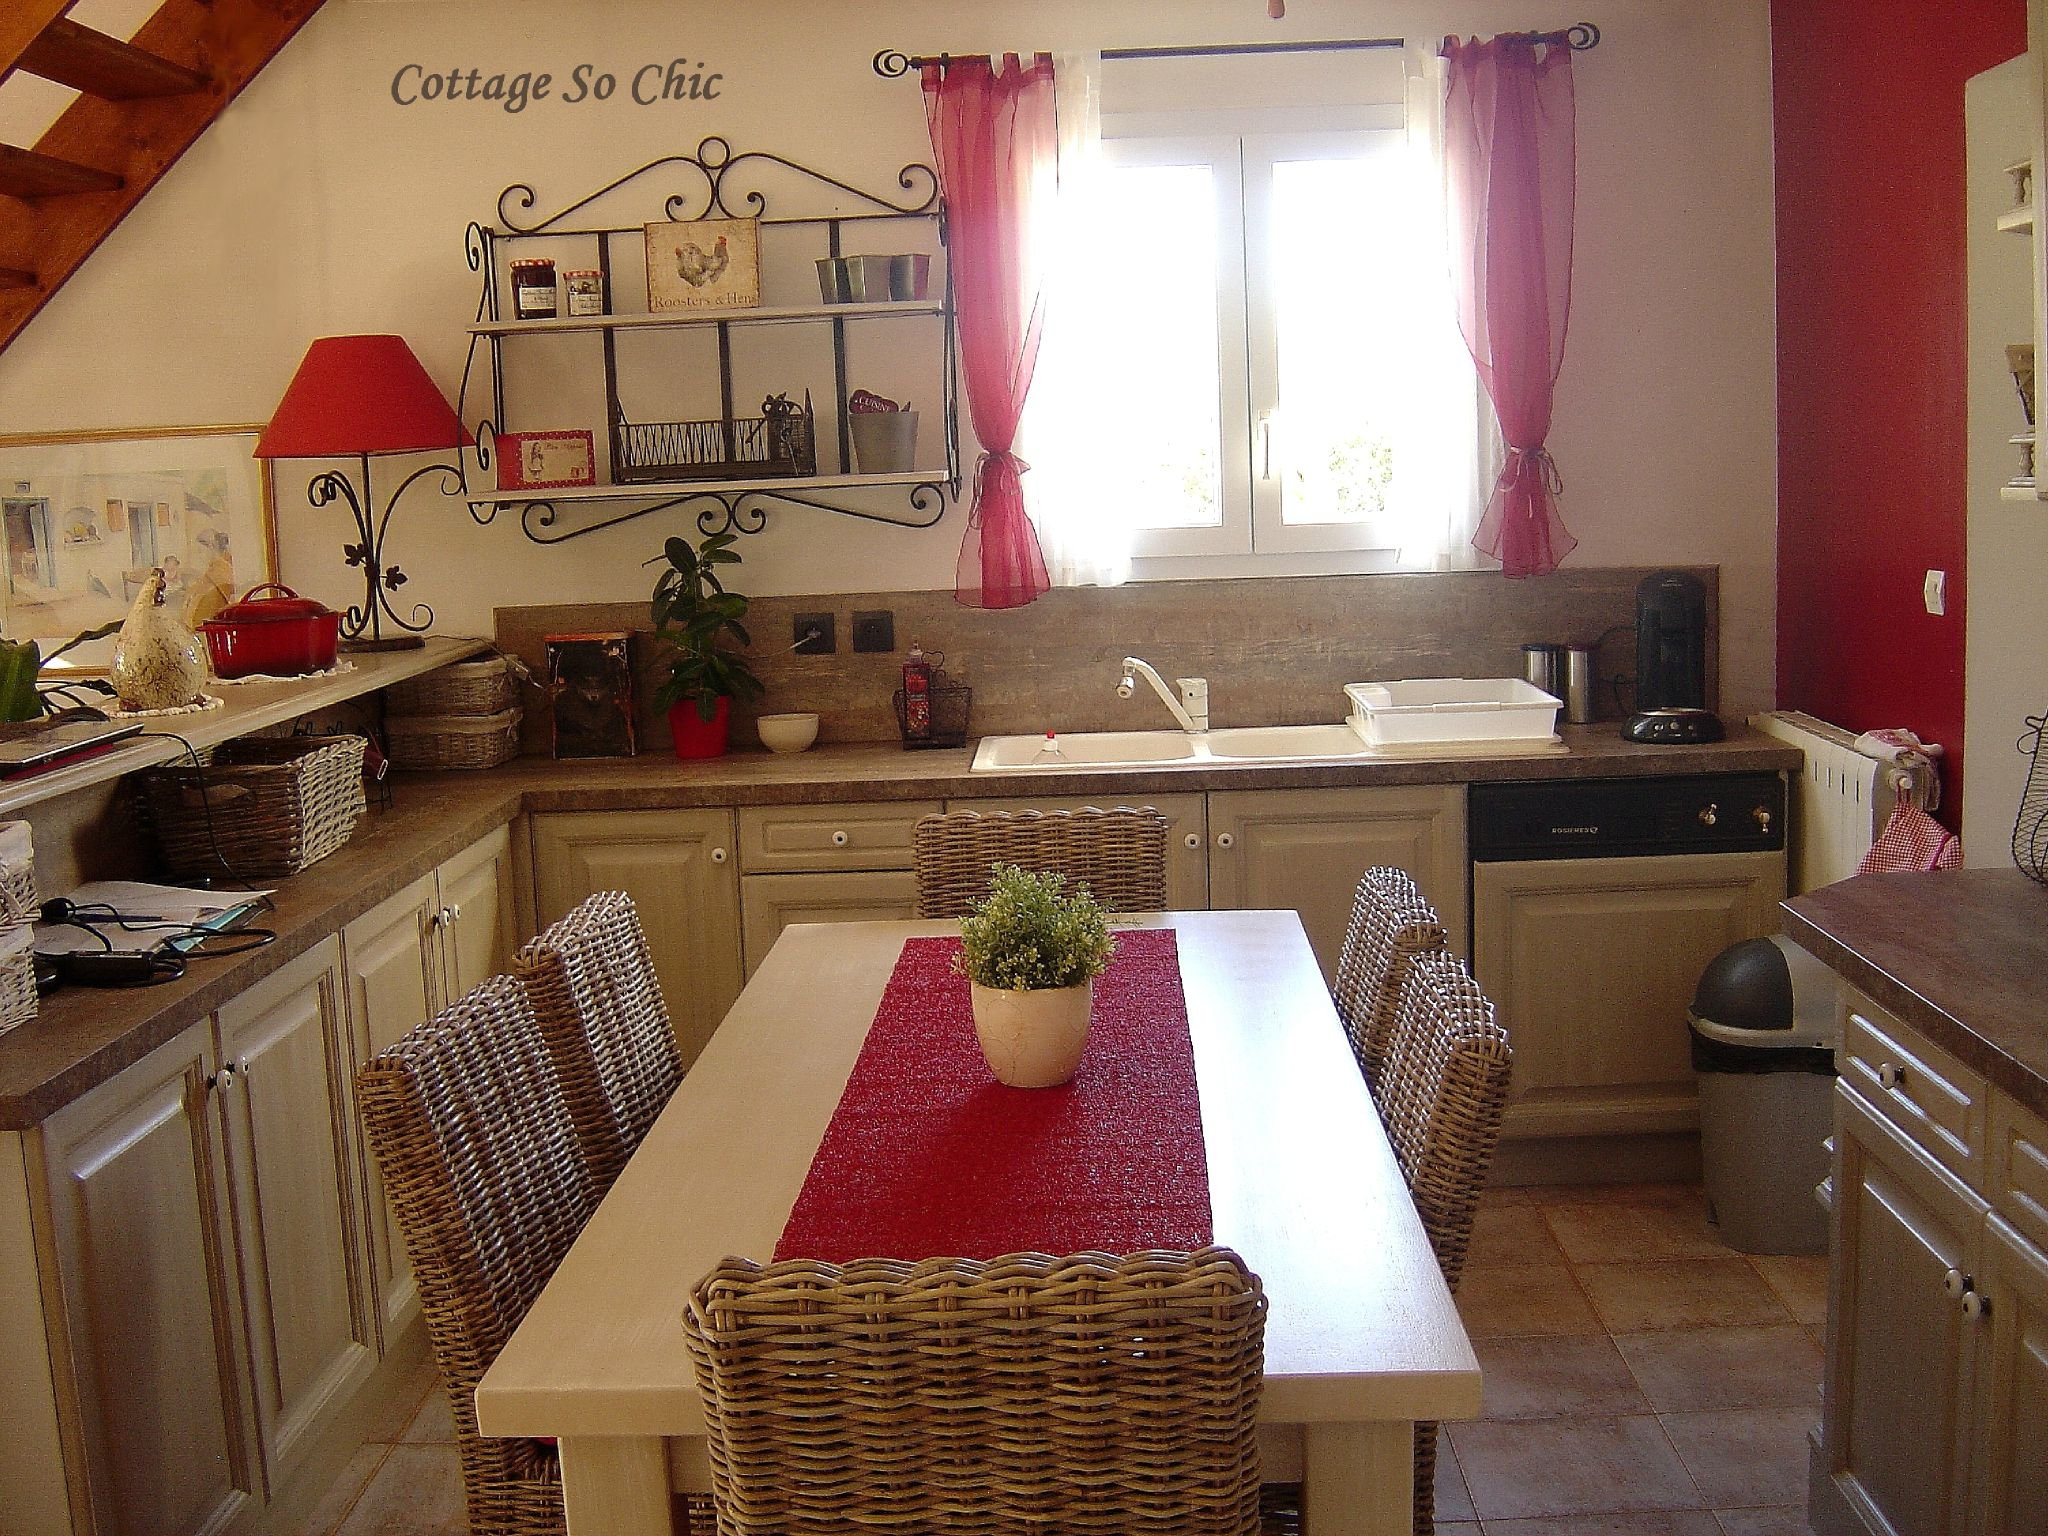 Esprit campagne chic cottage so chic for Decoration cuisine